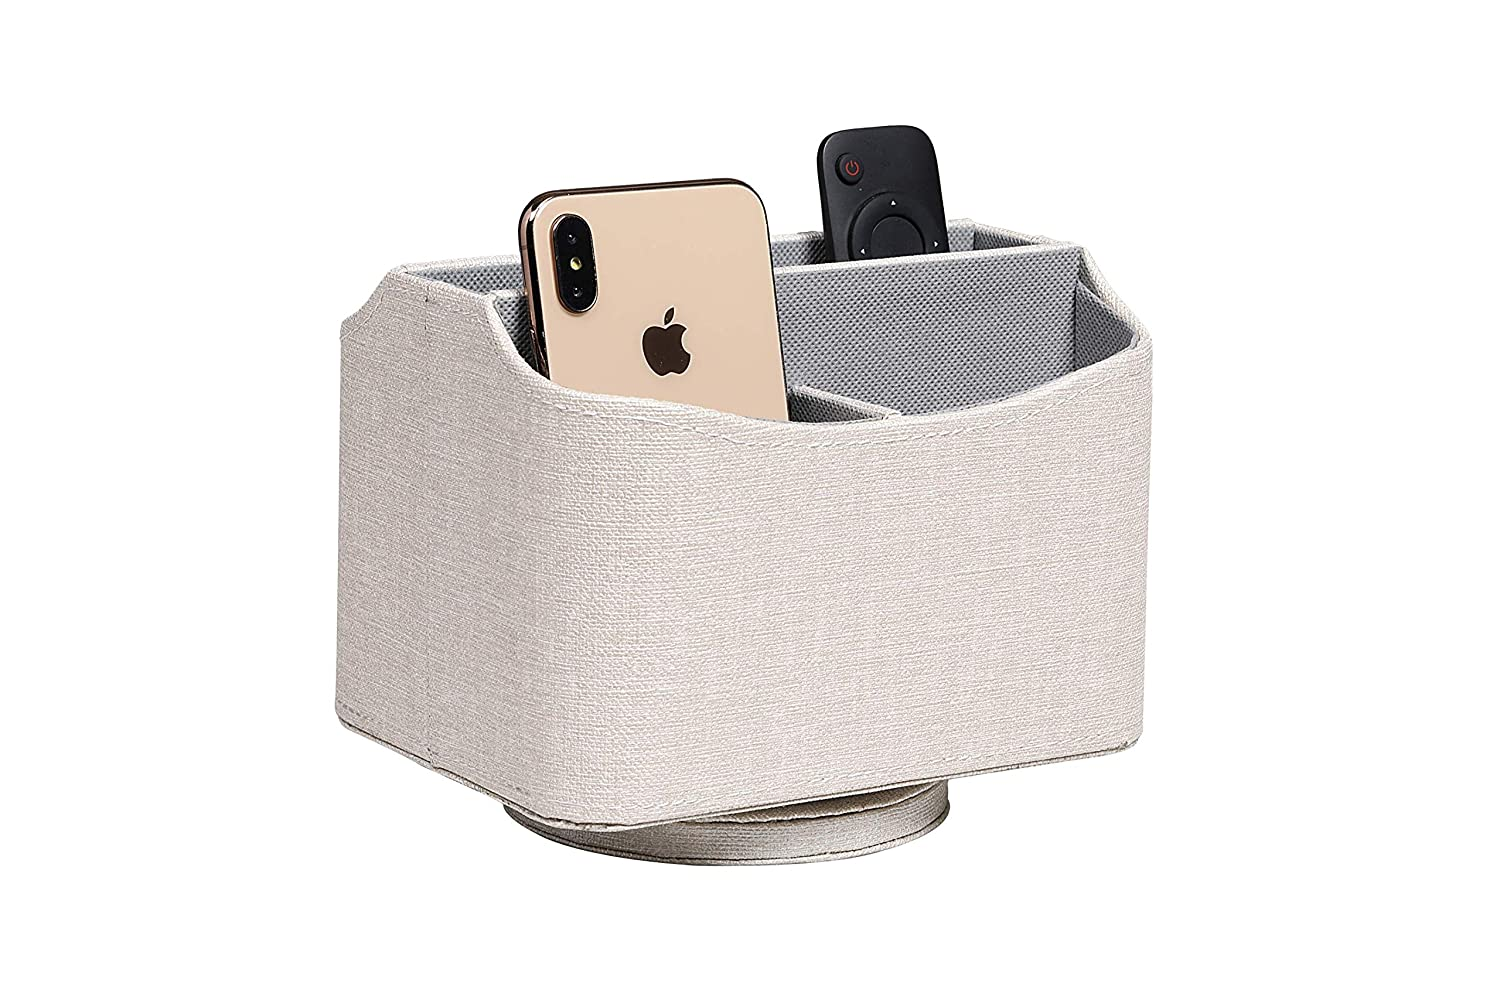 Fudostar PU Leather Linen Pattern Rotatable Organizer for Remote Controllers Magazines Spinning in 360 Degrees Desk Media Organizer for Home and Office Gray